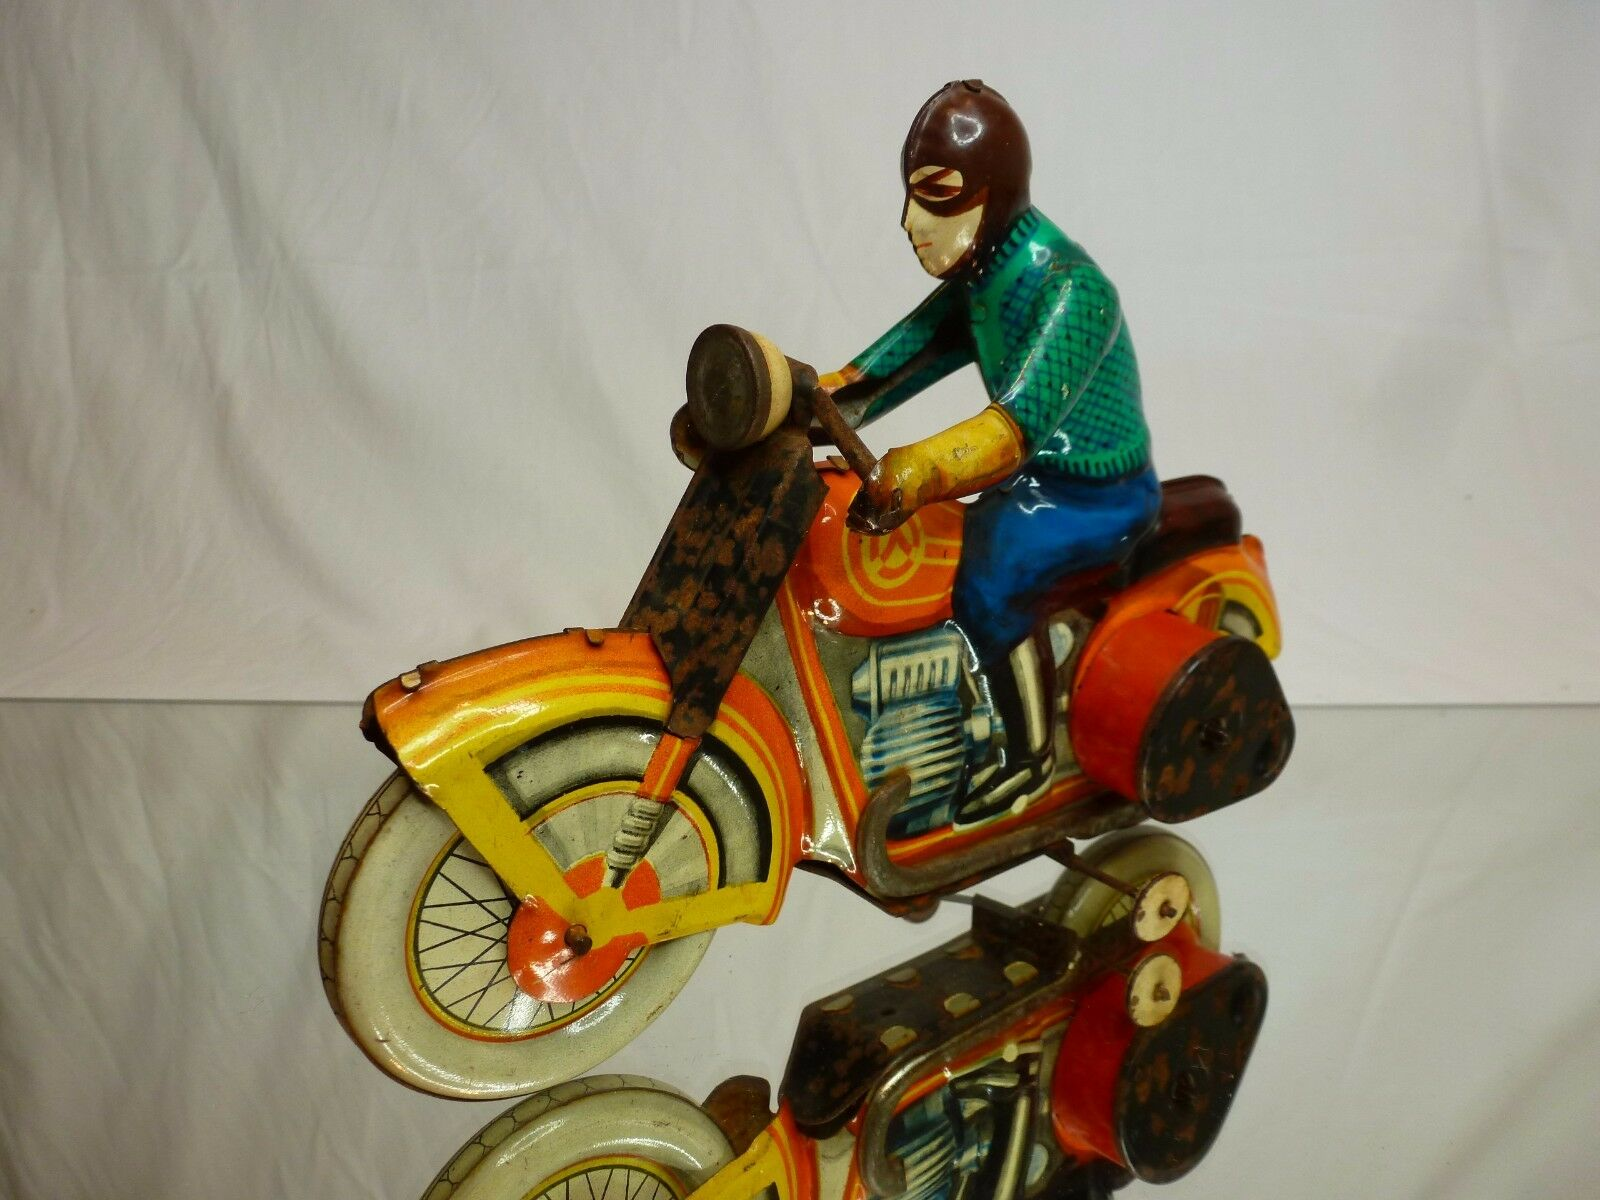 TIN TOY BLECH - VINTAGE WINDUP  MOTORCYCLE L22.0cm - GOOD CONDITION